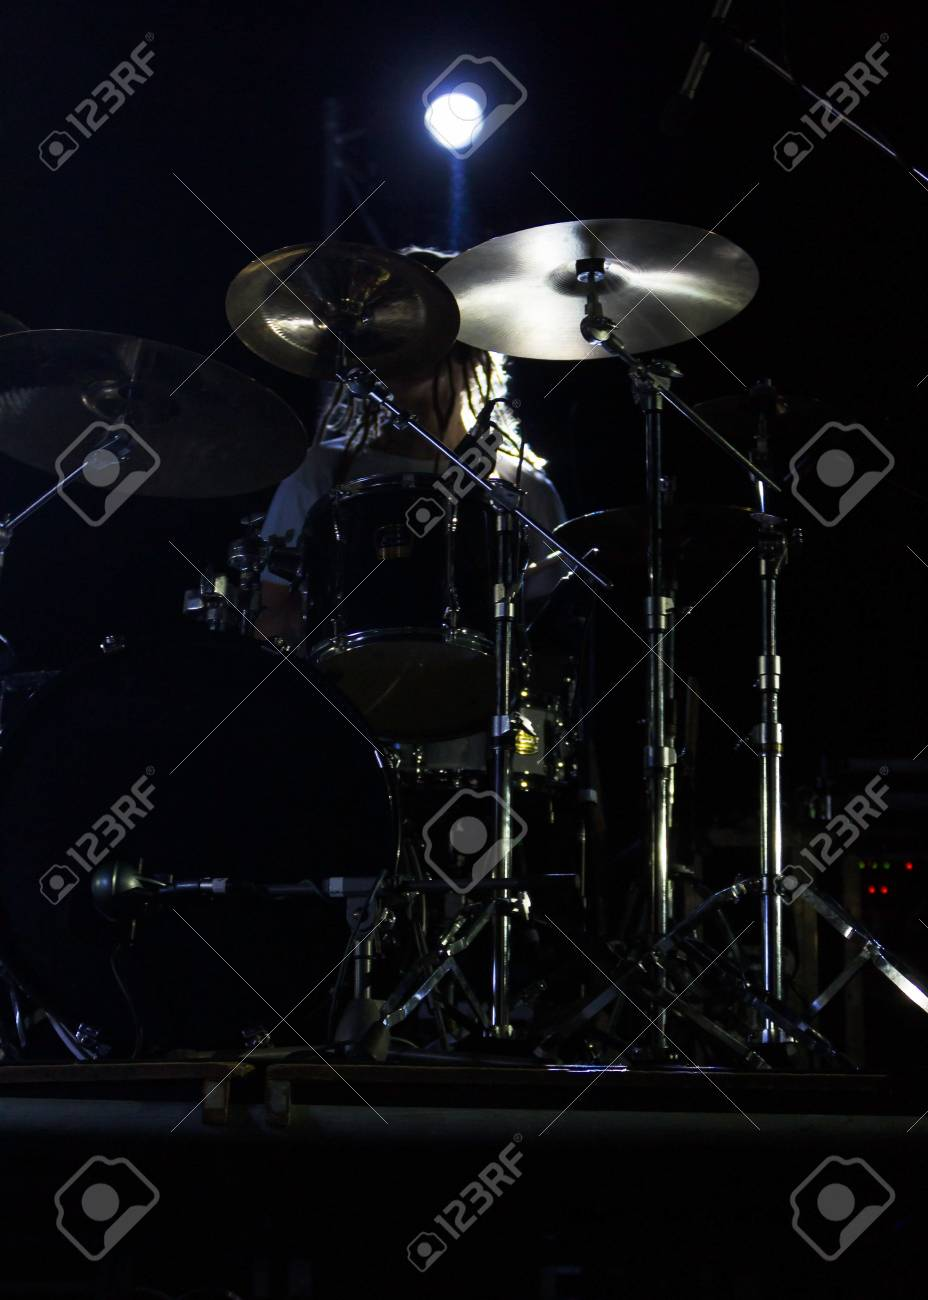 Live Music Photo Background Rock Drum Set With Cymbals Closeup